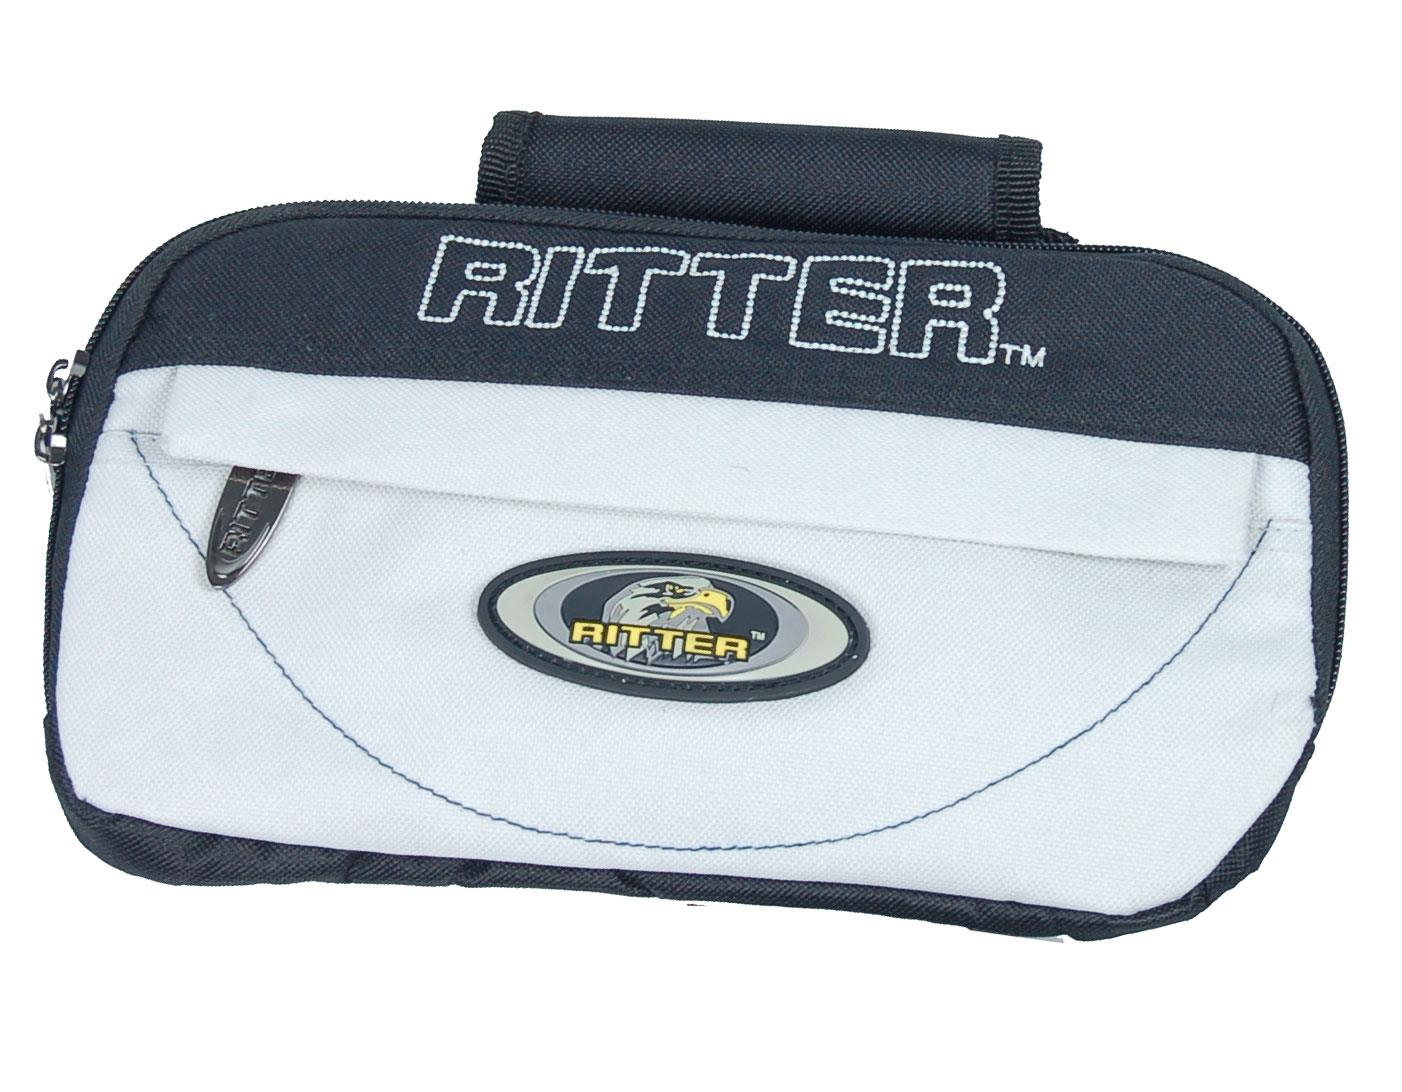 Image of Ritter RCPWP Classic Waist Pouch Black Silk Gray 0069085901383